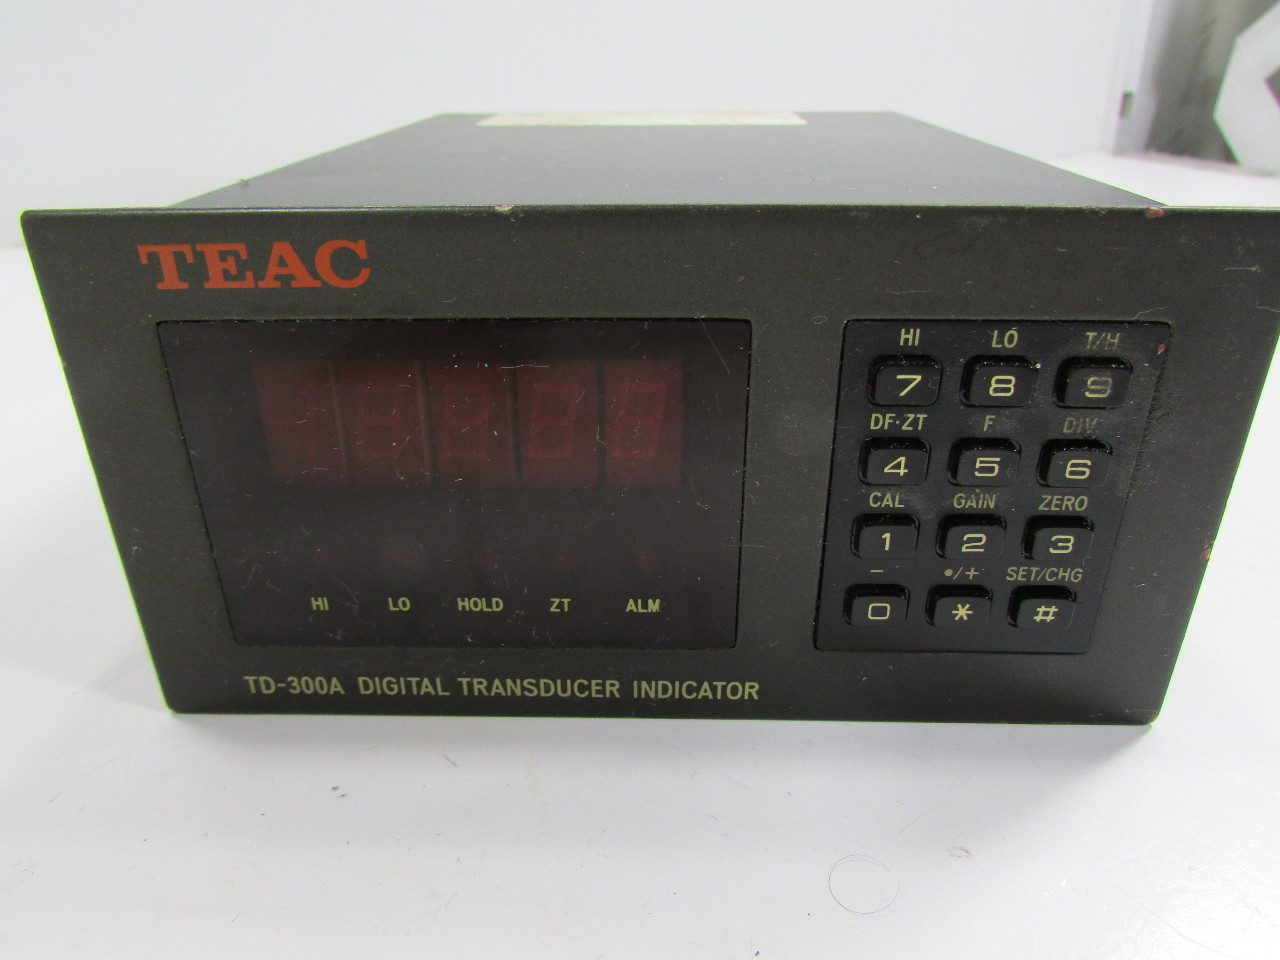 Digital Indicator Parts : Teac td a digital transducer indicator parts